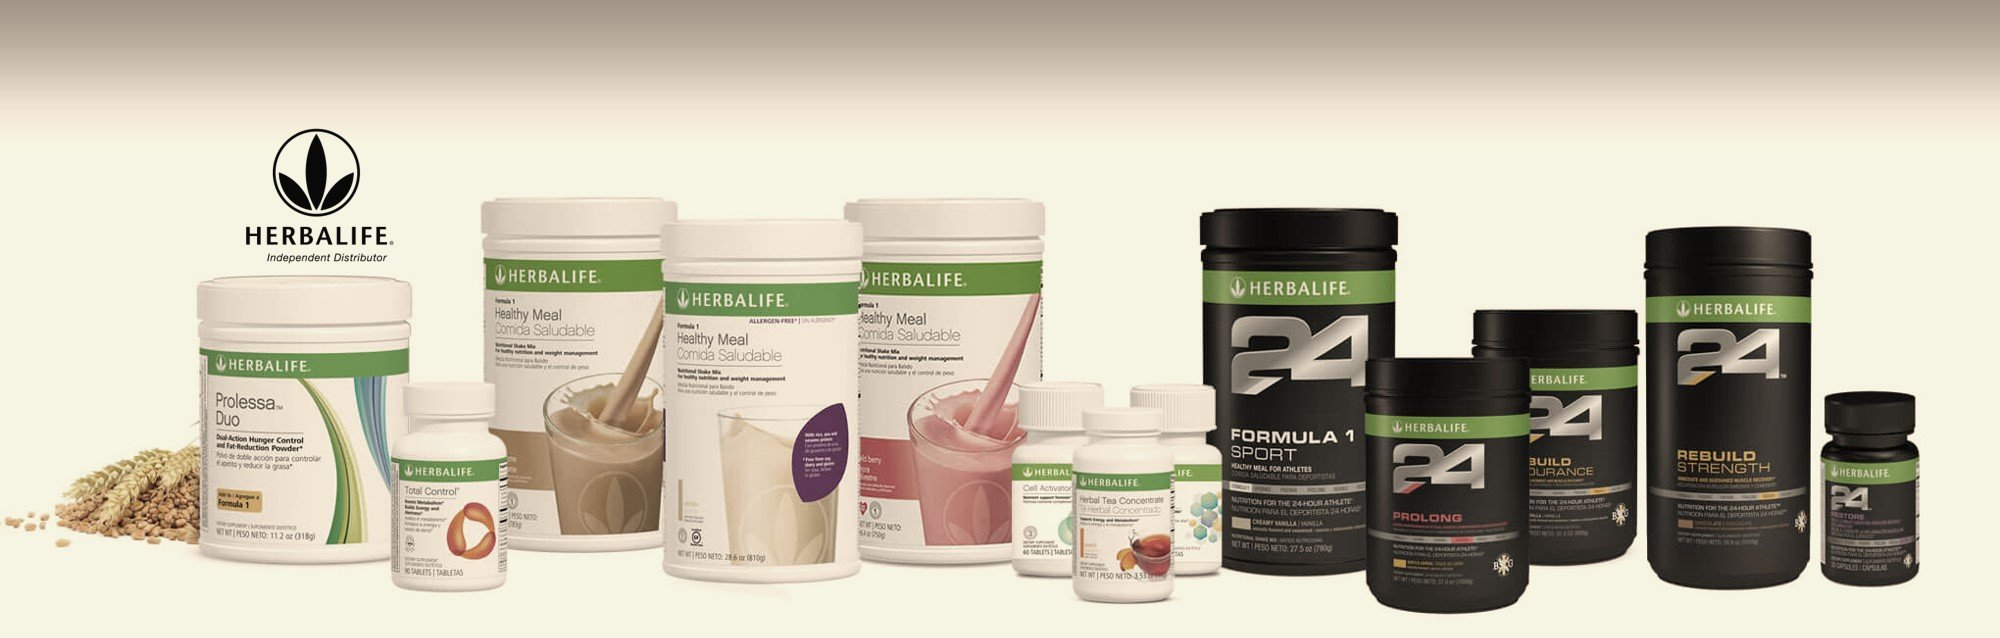 Herbalife Products Online